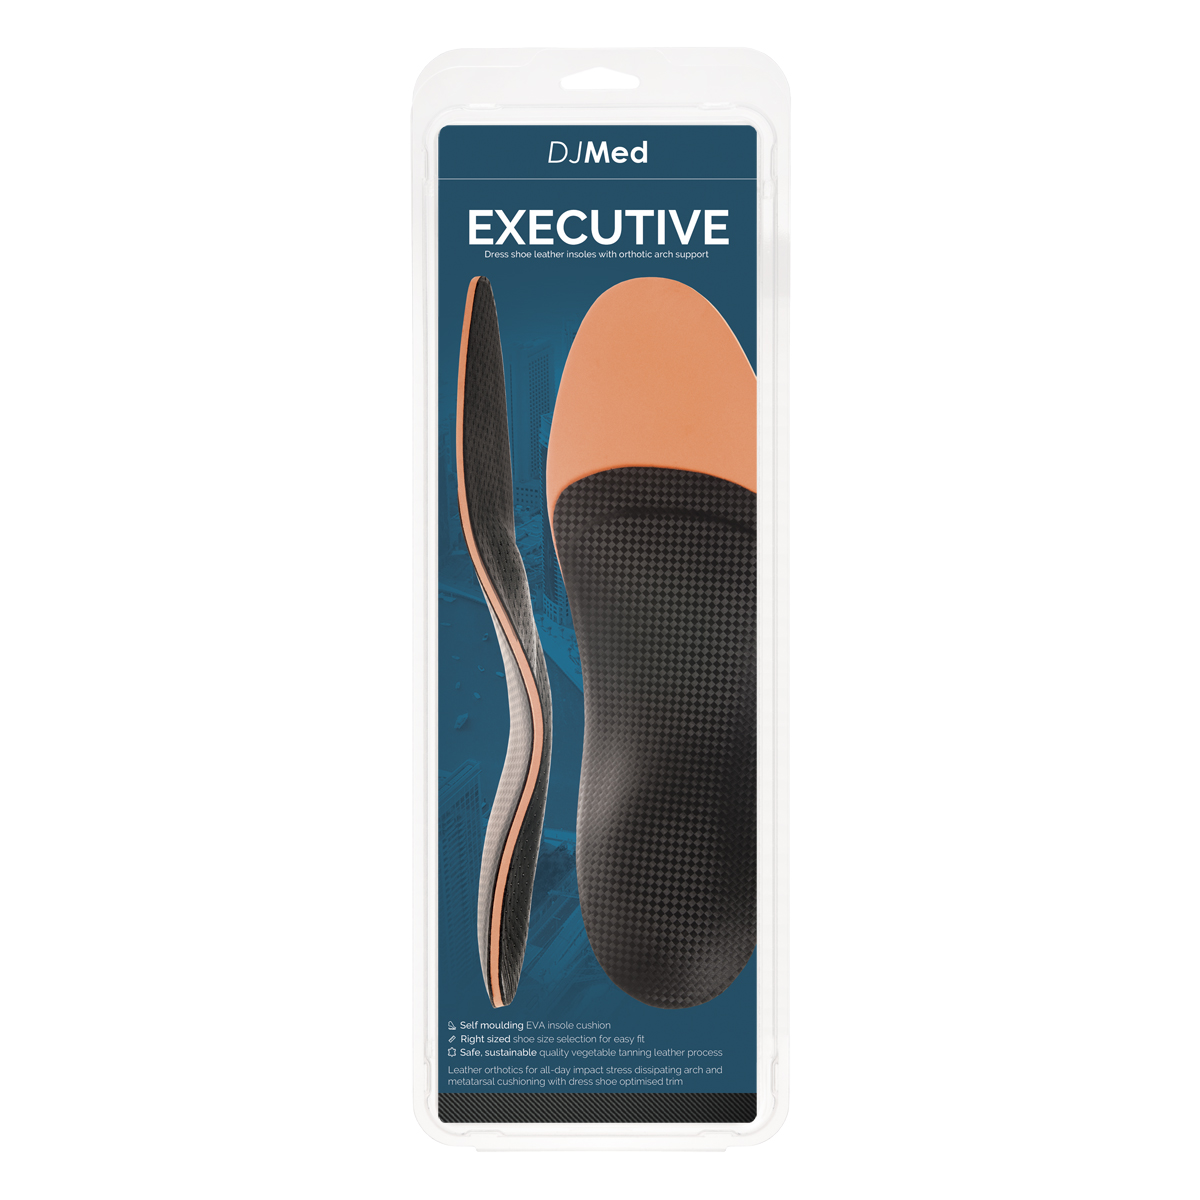 ee77c67980f4 DJMed Signature Executive - Dress Shoe Leather Insoles